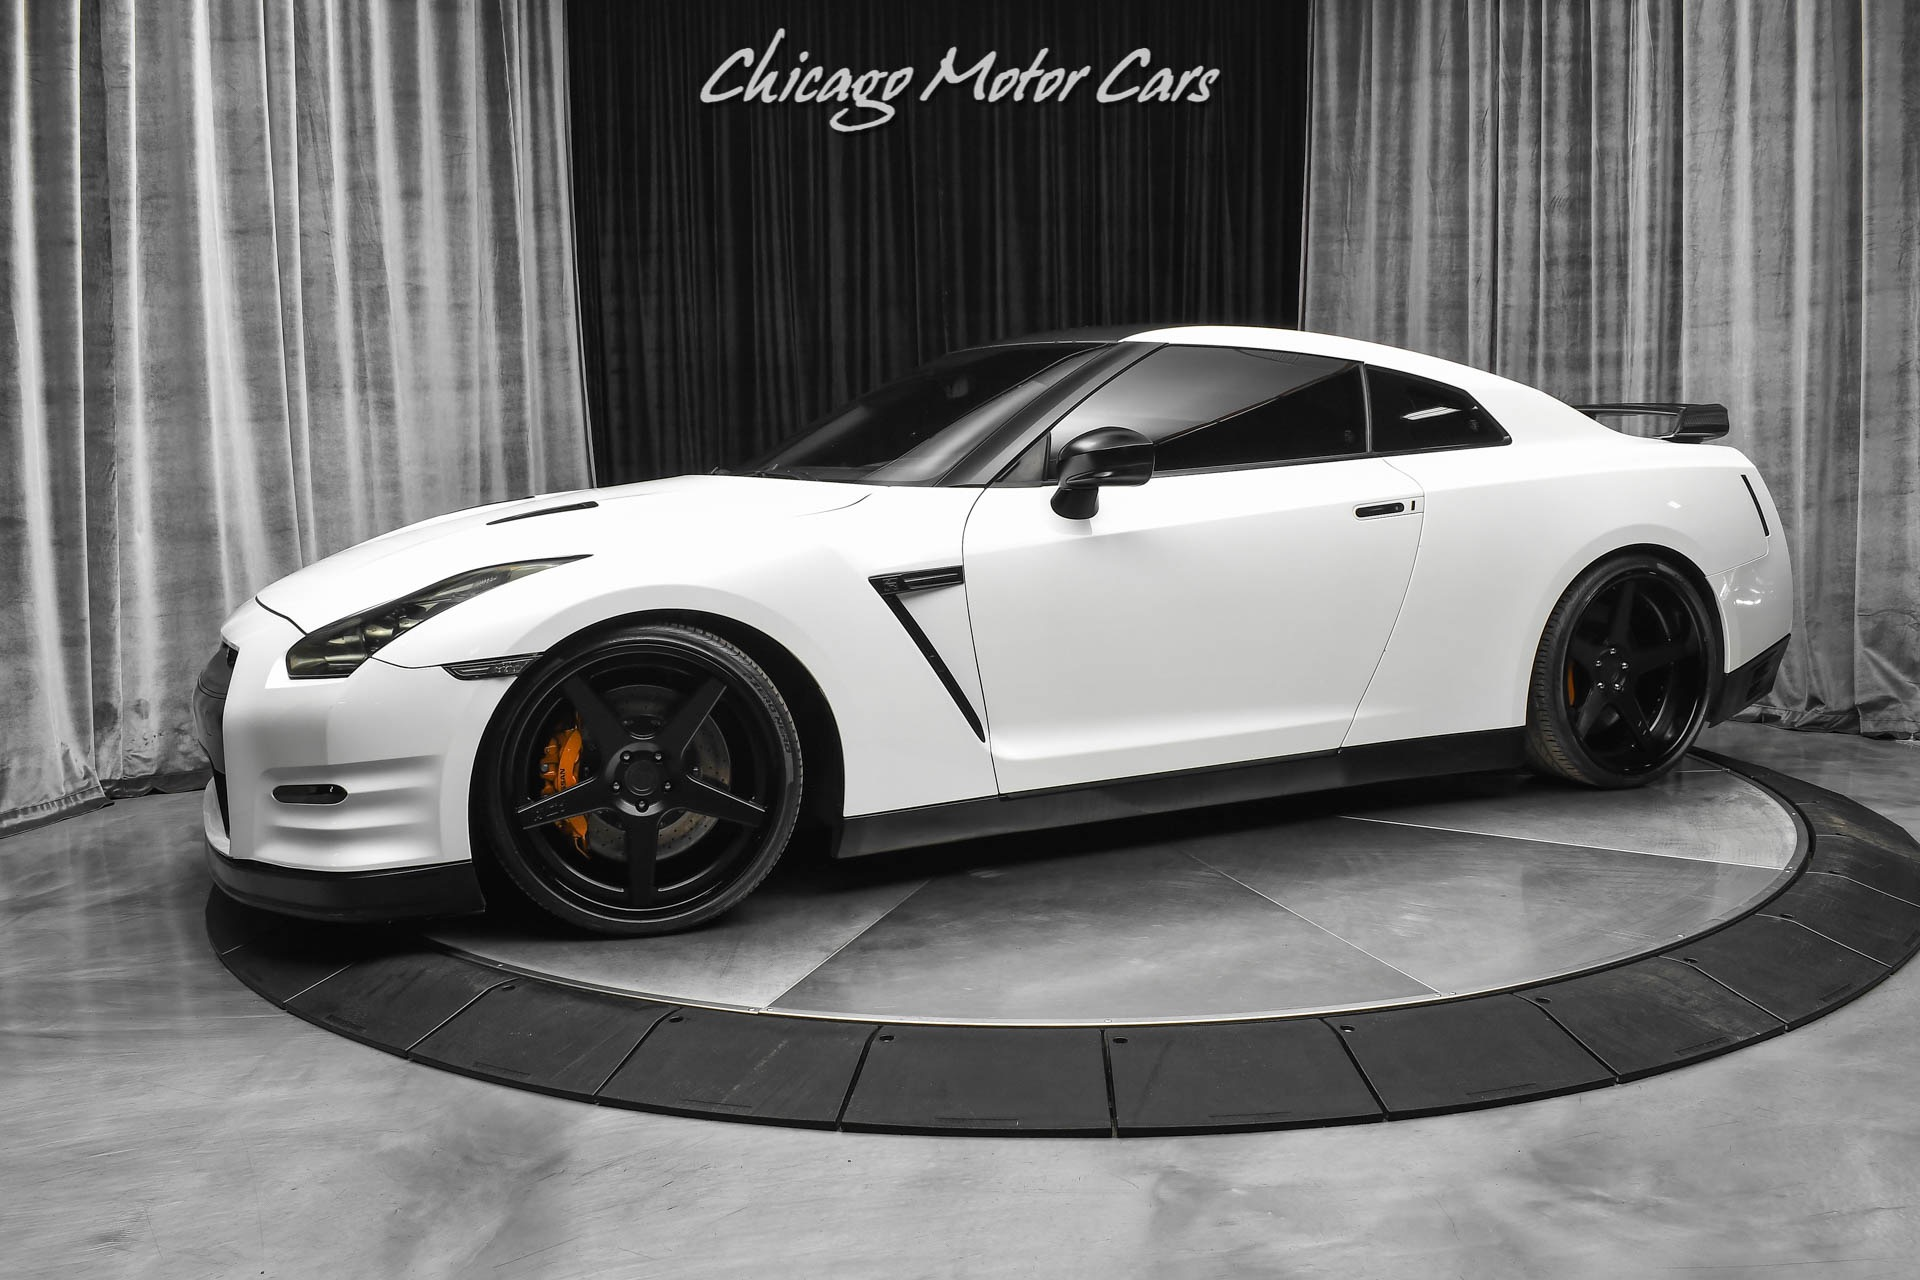 Used-2013-Nissan-GT-R-Black-Edition-800HP-UPGRADED-TURBOS